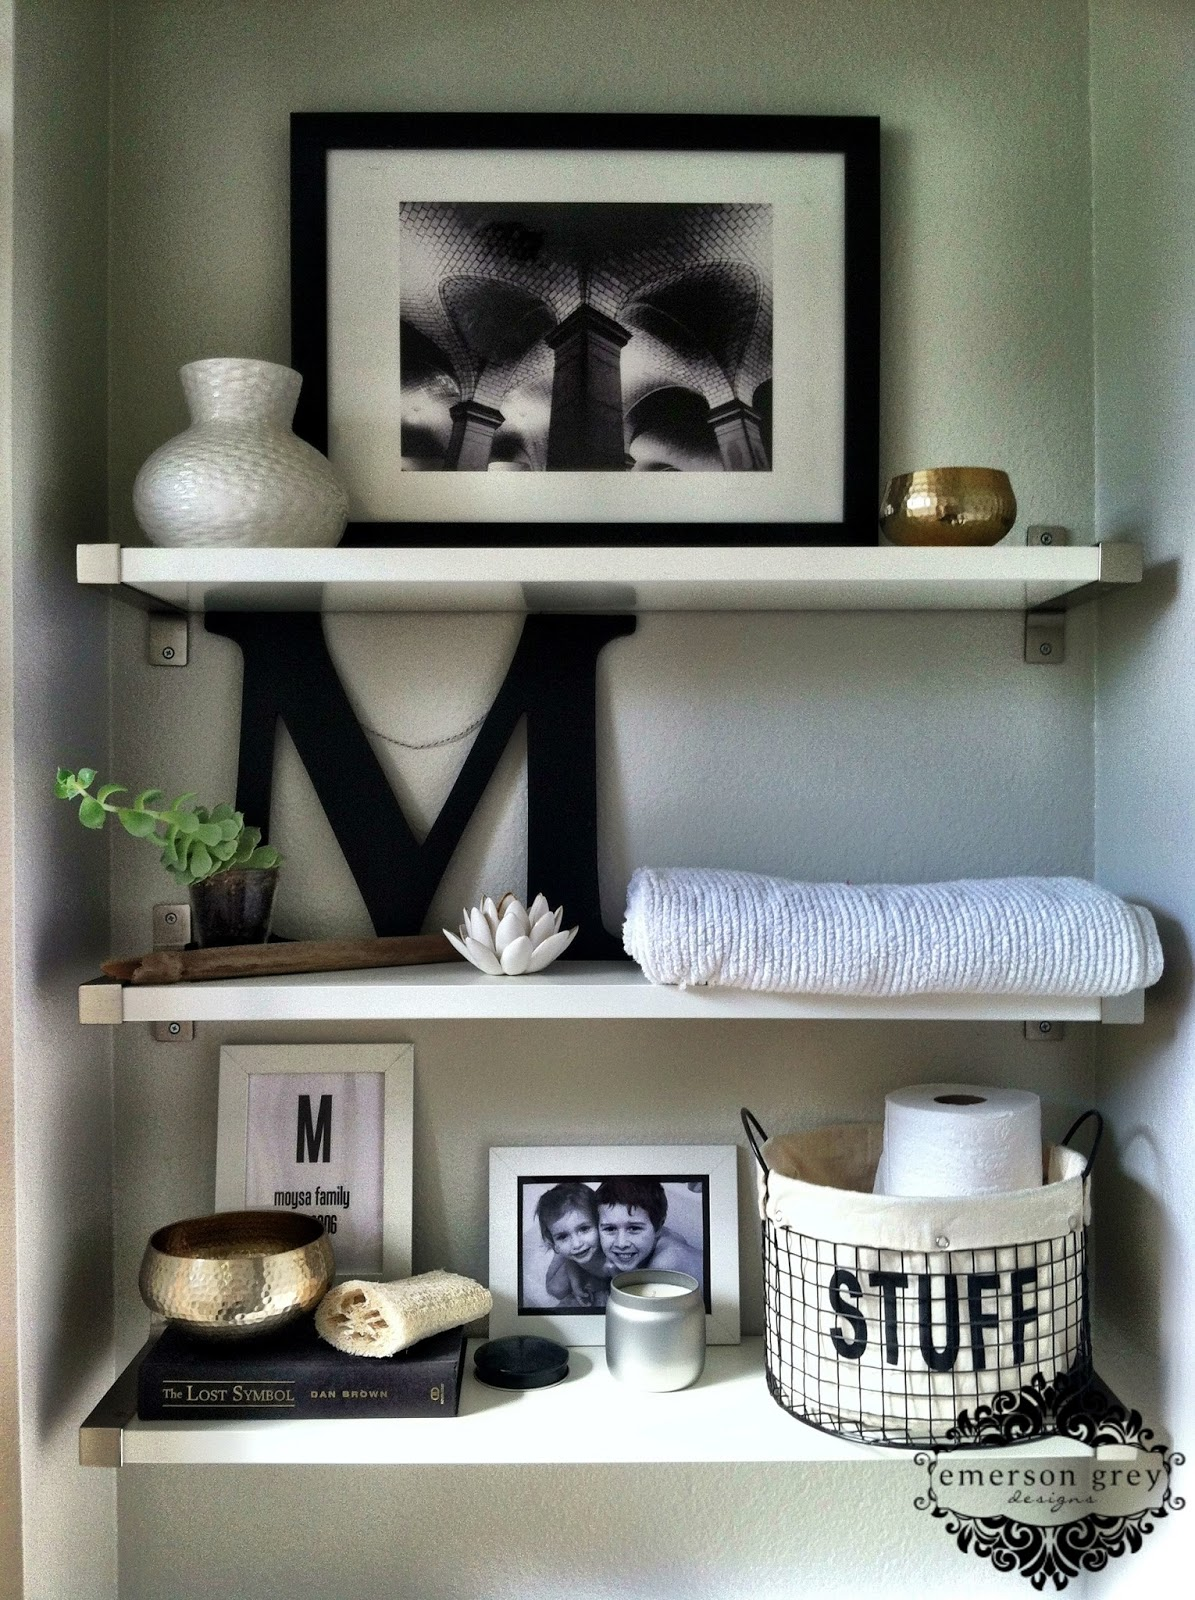 Fantastic Every Room In A House Or An Apartment Has Its Own Uses For An Open Shelf Or A Shelving Unit In Fact, In The Bathroom Alone There Are Tons Of Ways In Which To Use Wall Shelves Well Explore Some Of Those Options While Also Showcasing